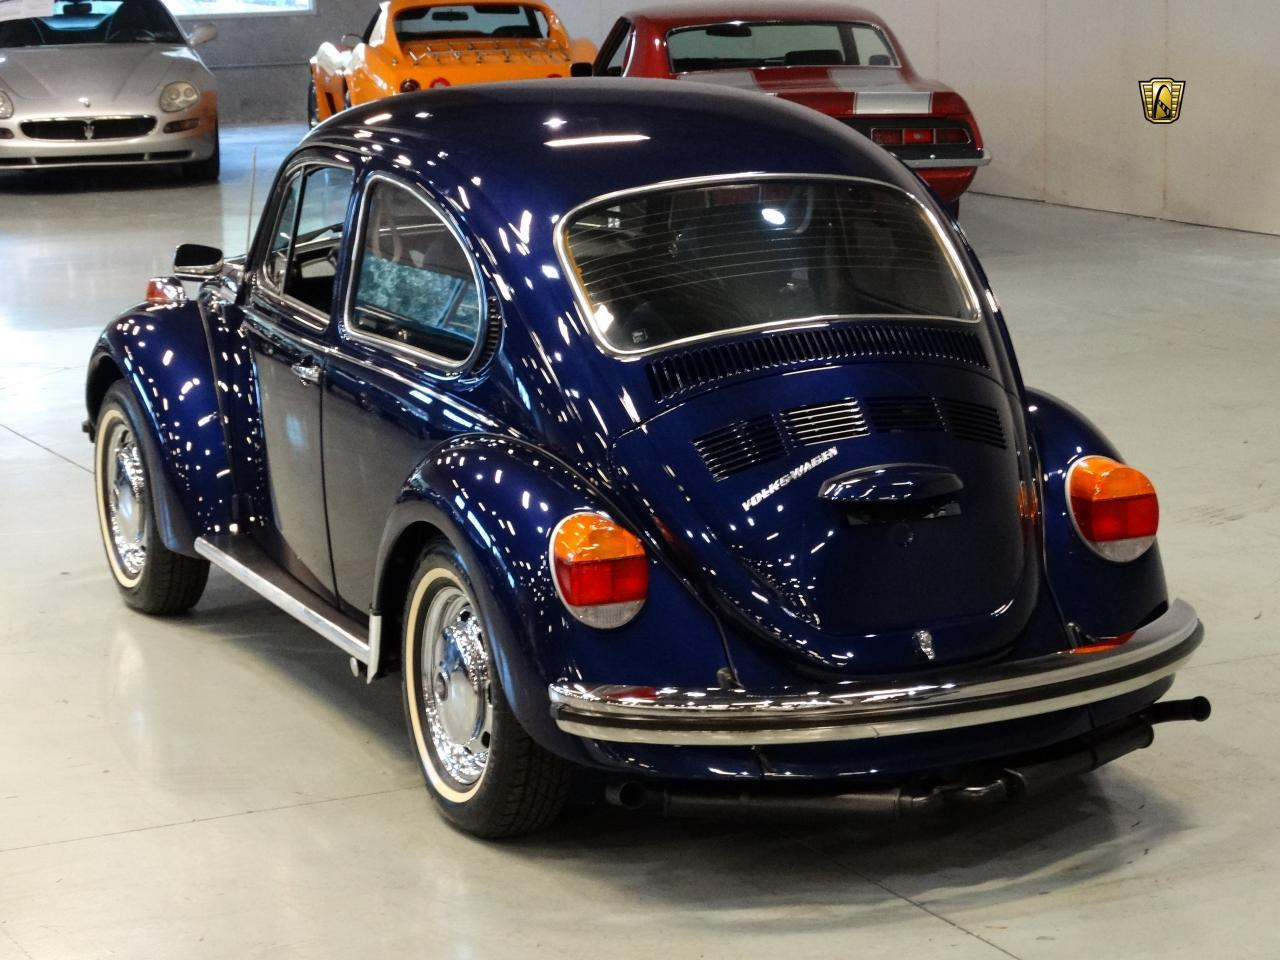 Large Picture of 1973 Volkswagen Beetle located in Florida - $20,595.00 Offered by Gateway Classic Cars - Orlando - KDKC